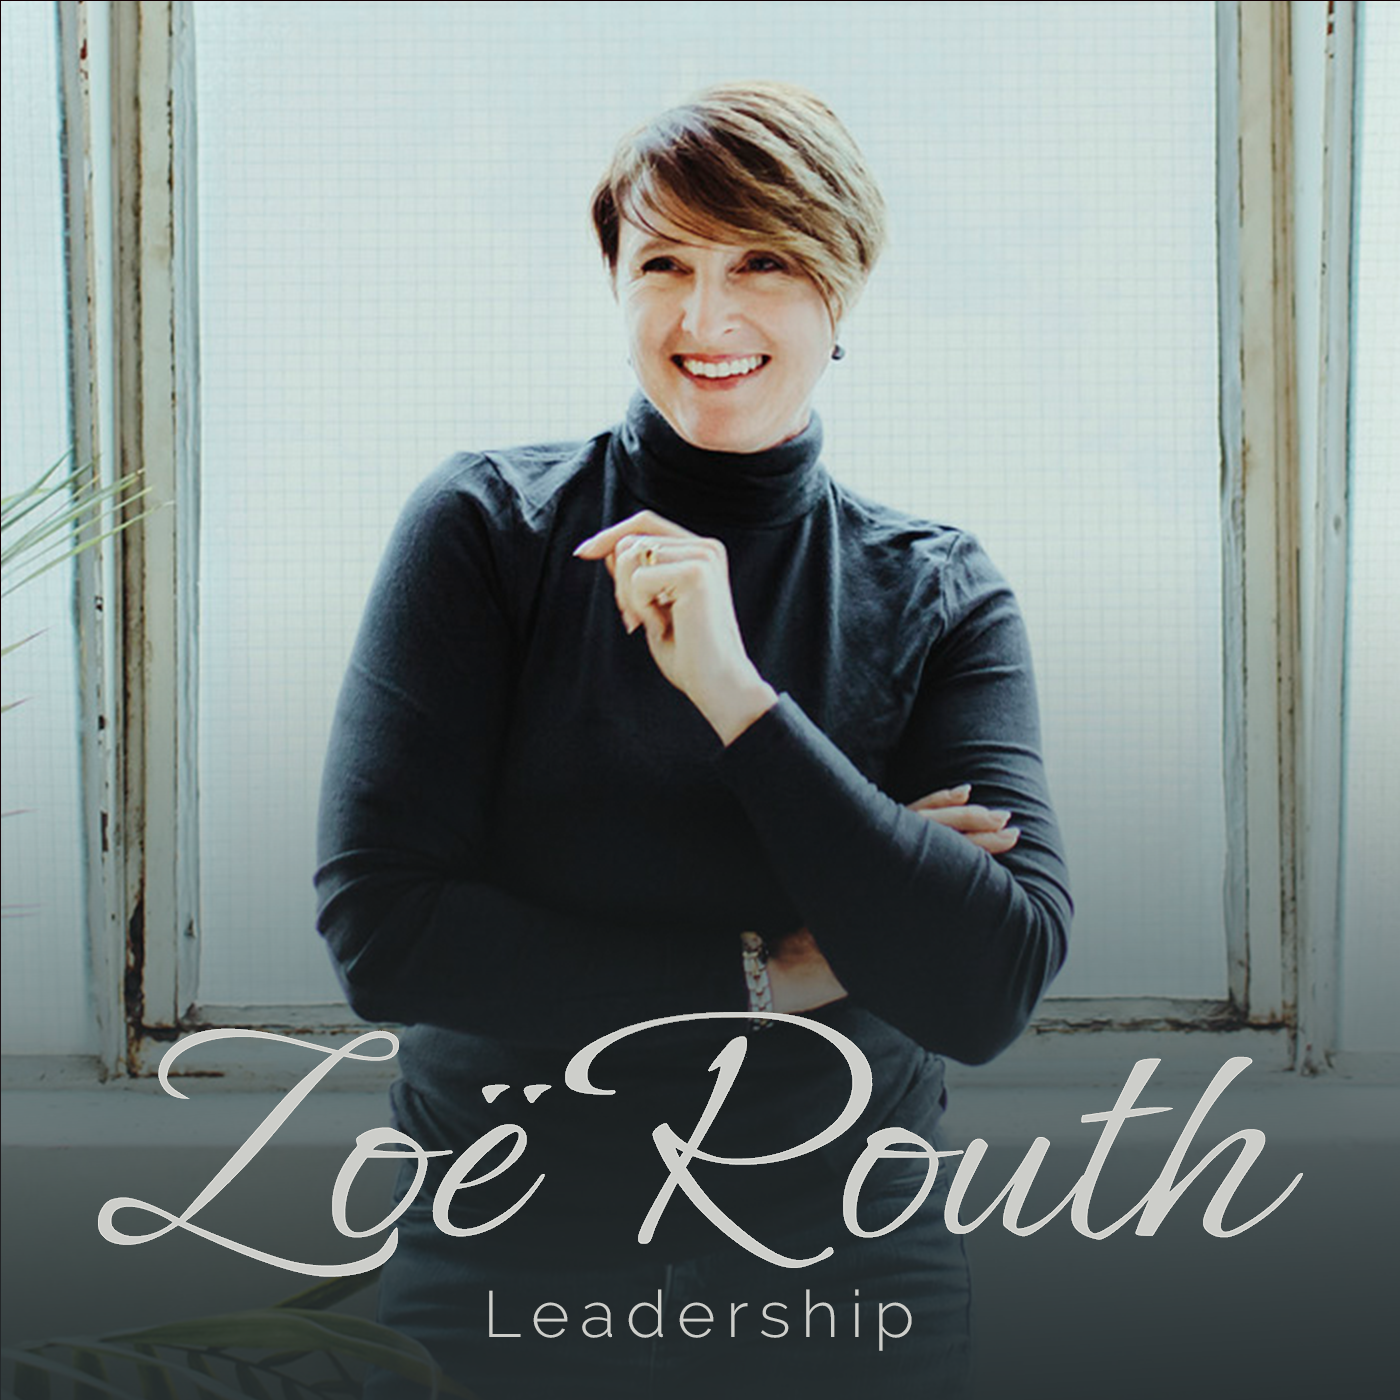 Zo Routh Leadership Podcast